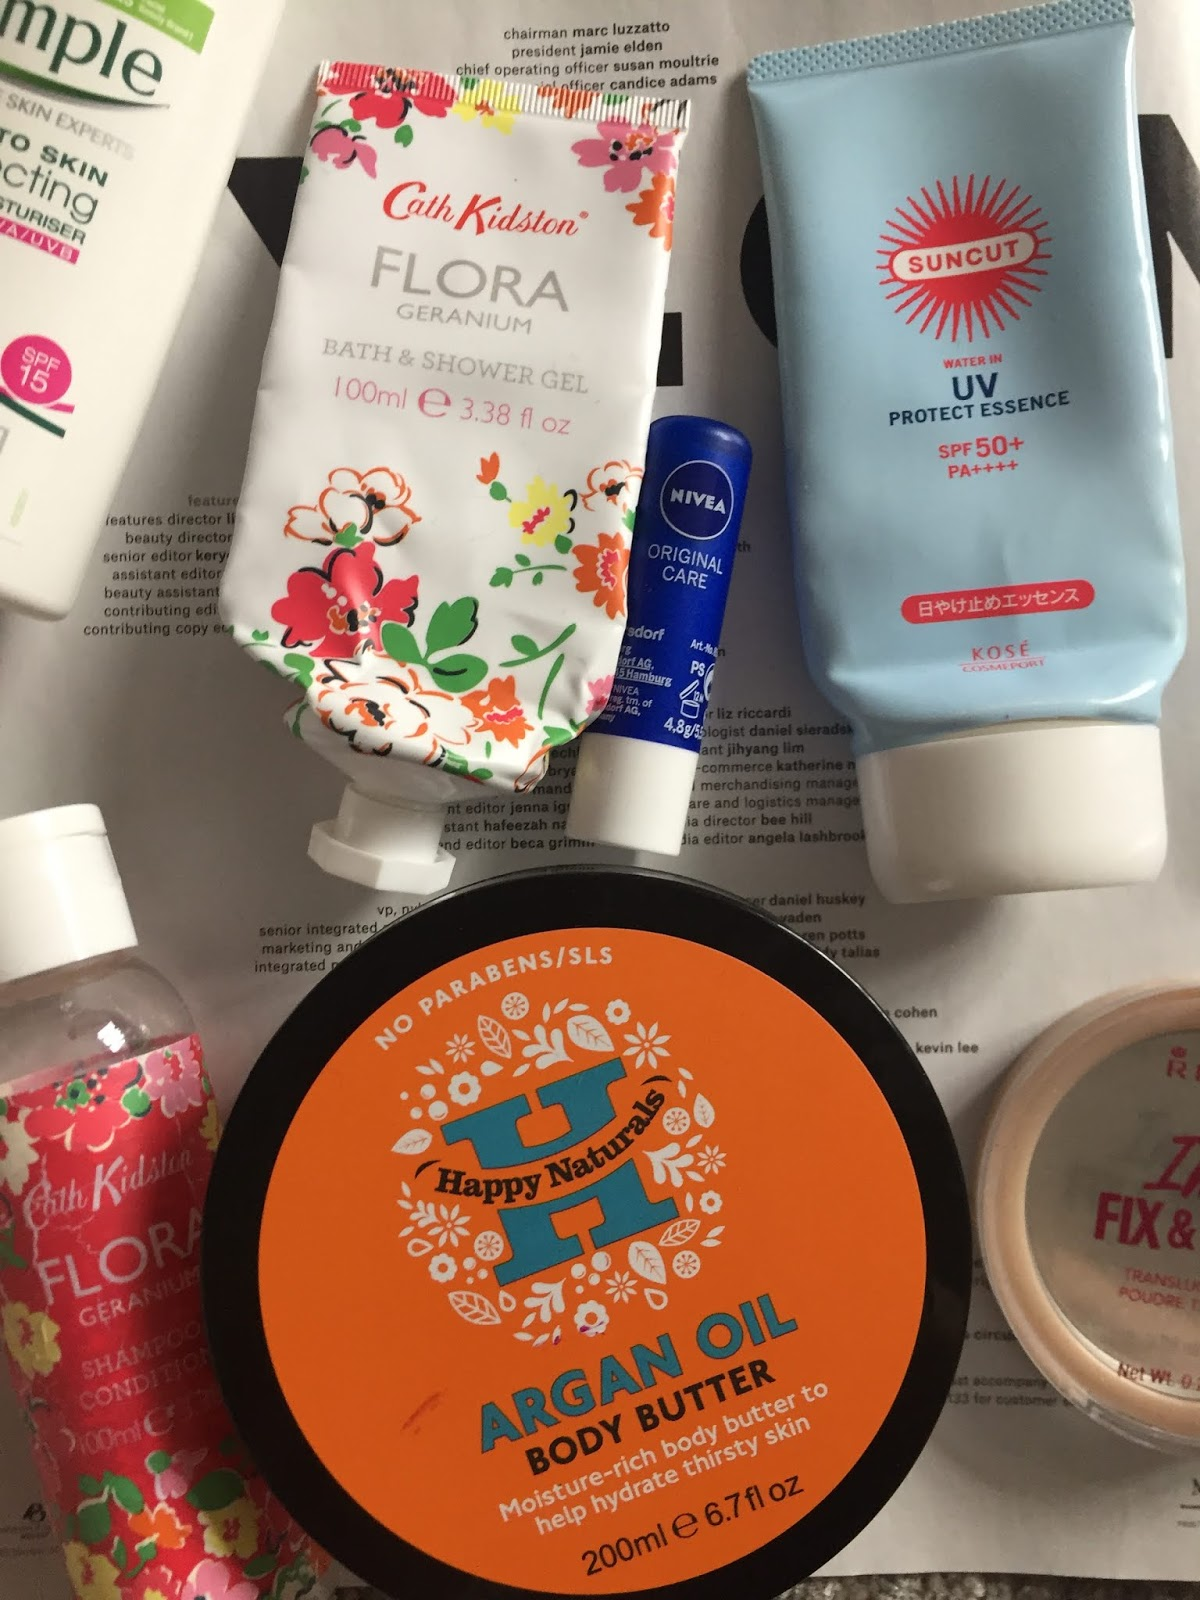 flatlay of empty beauty products including Nivea, Kosé and Cath Kidston